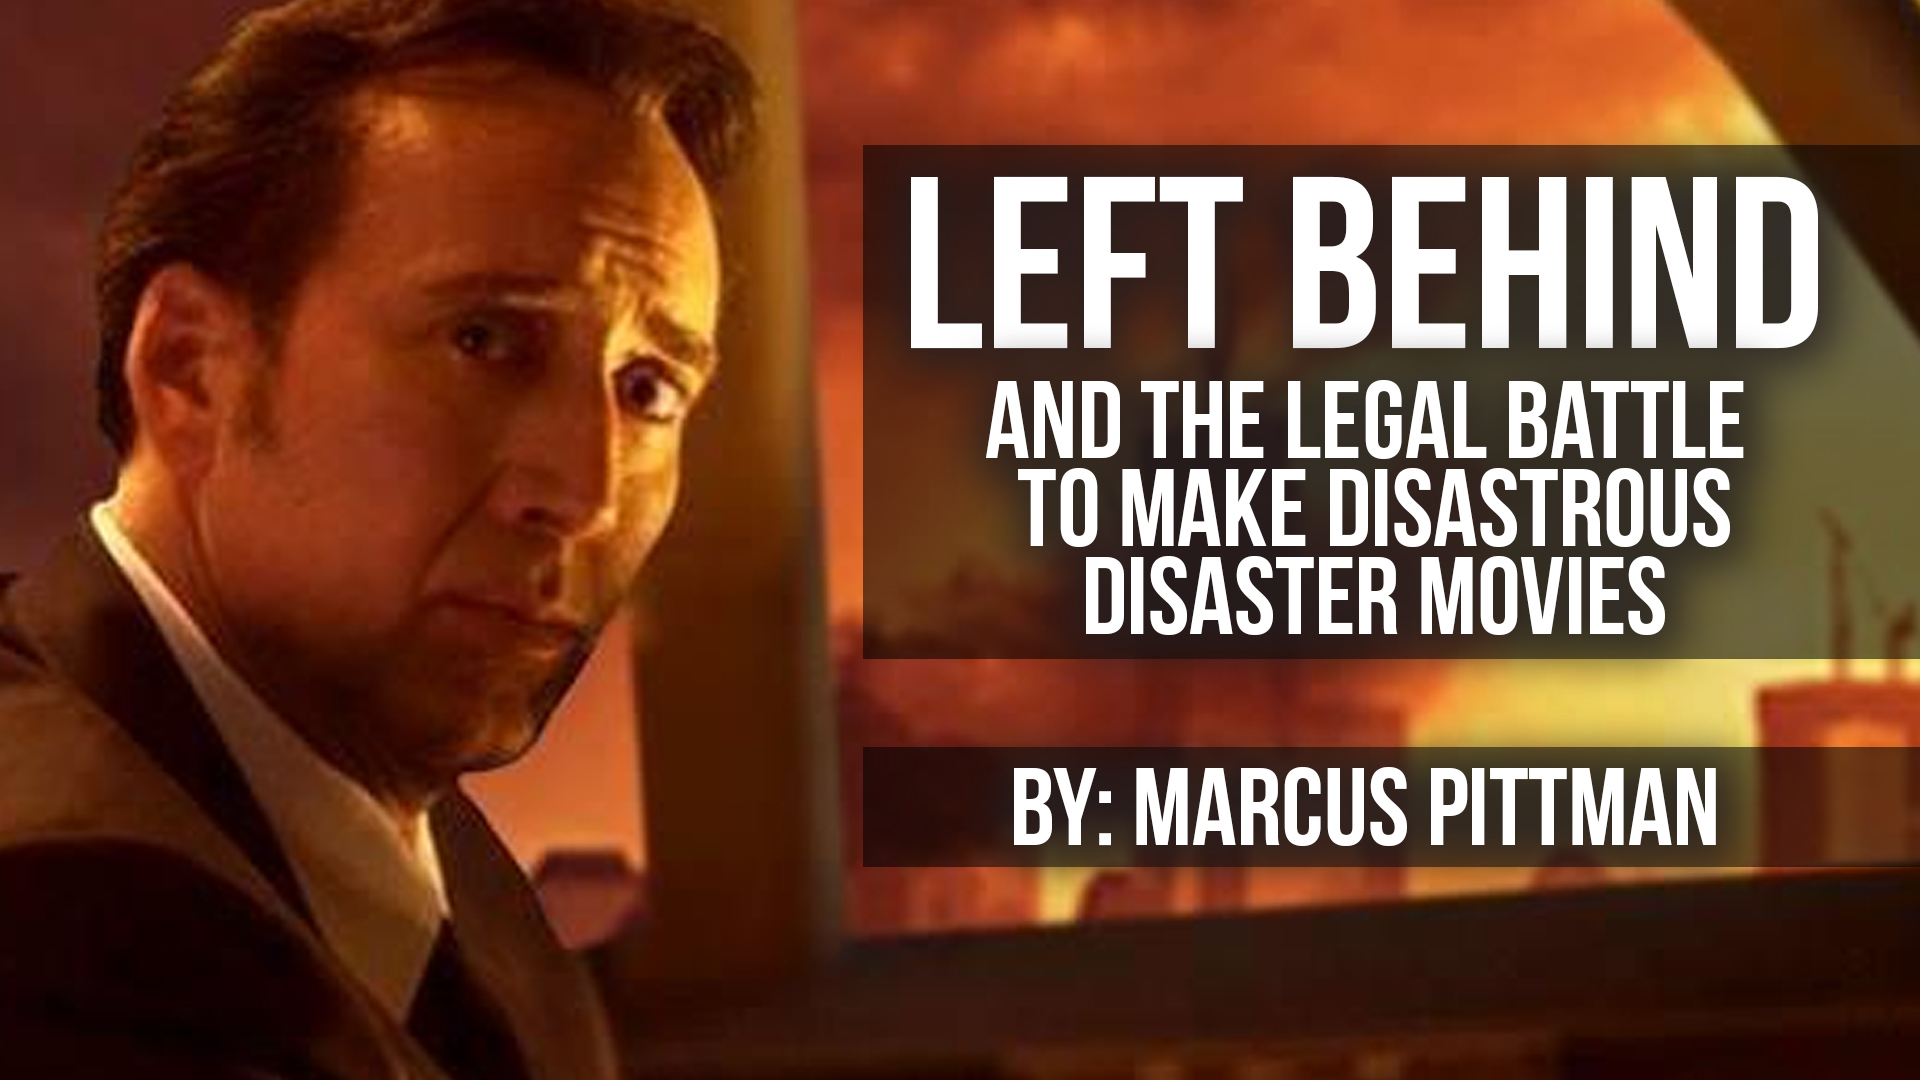 Left Behind and the Legal Battle To Make Disastrous Disaster Movies